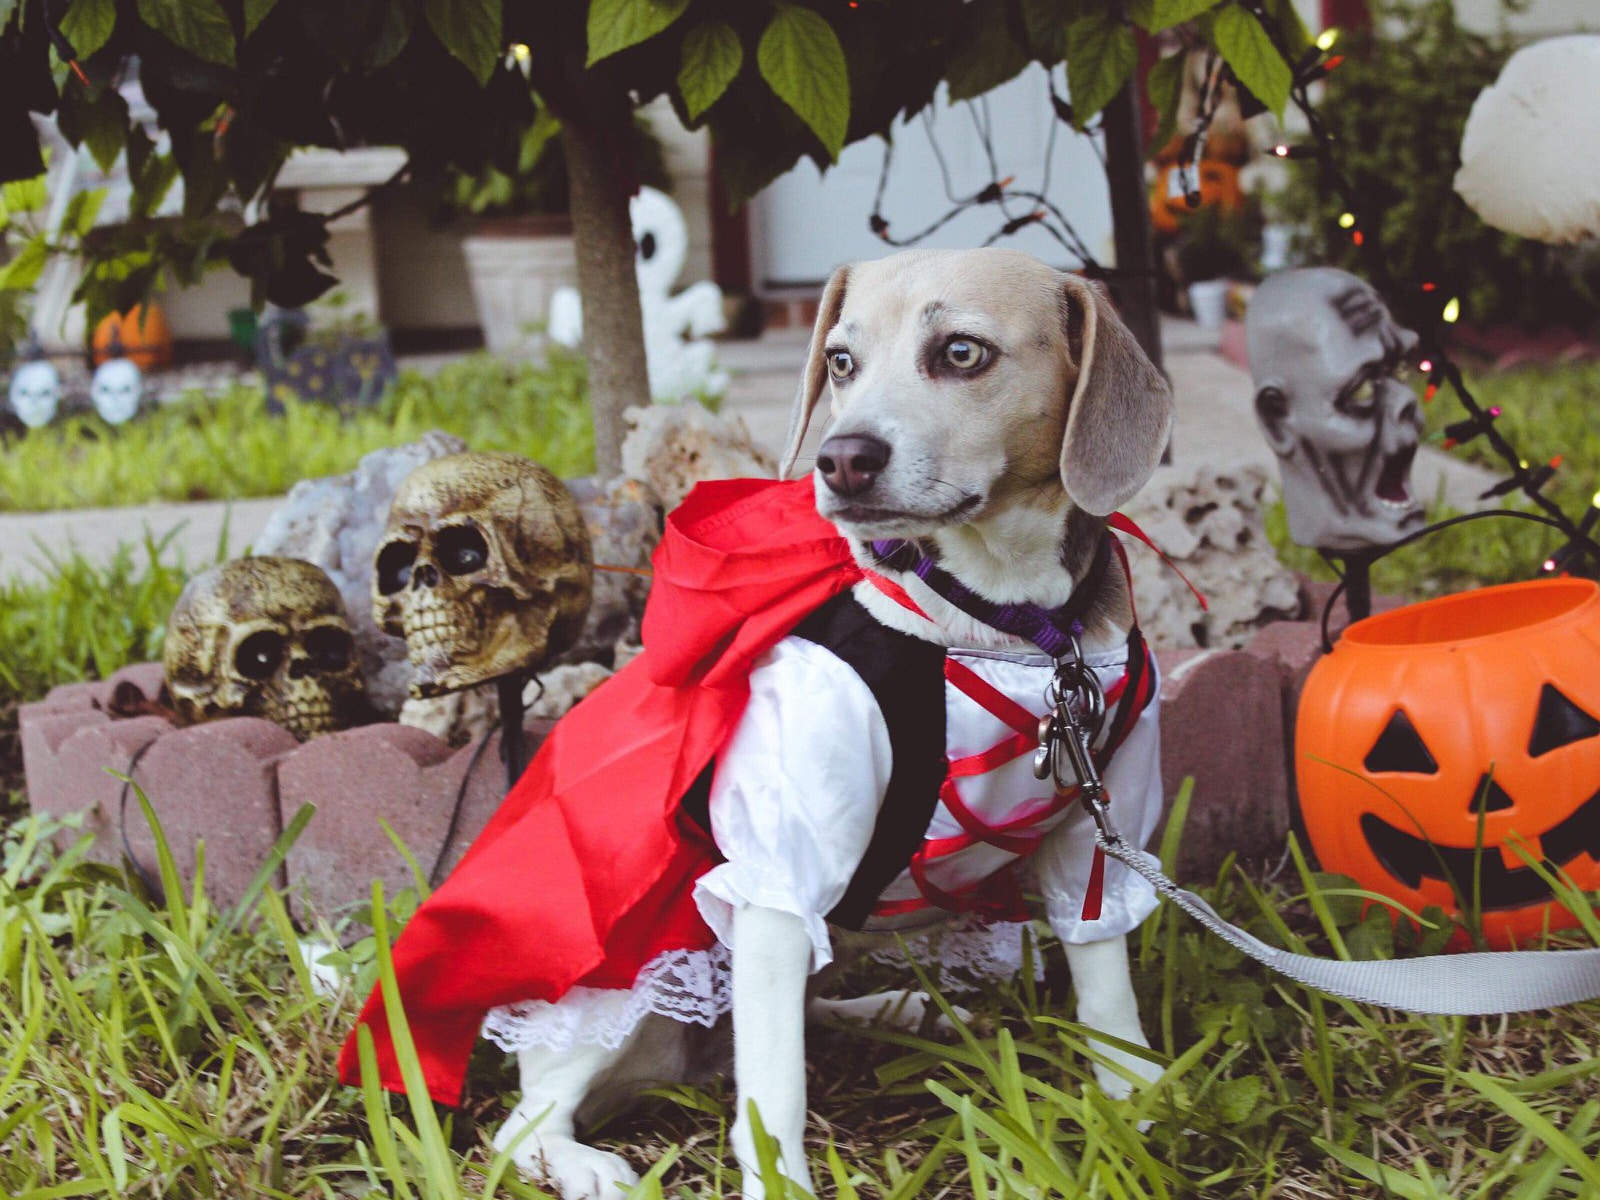 HALL-O-WEEN safety tips for pets!